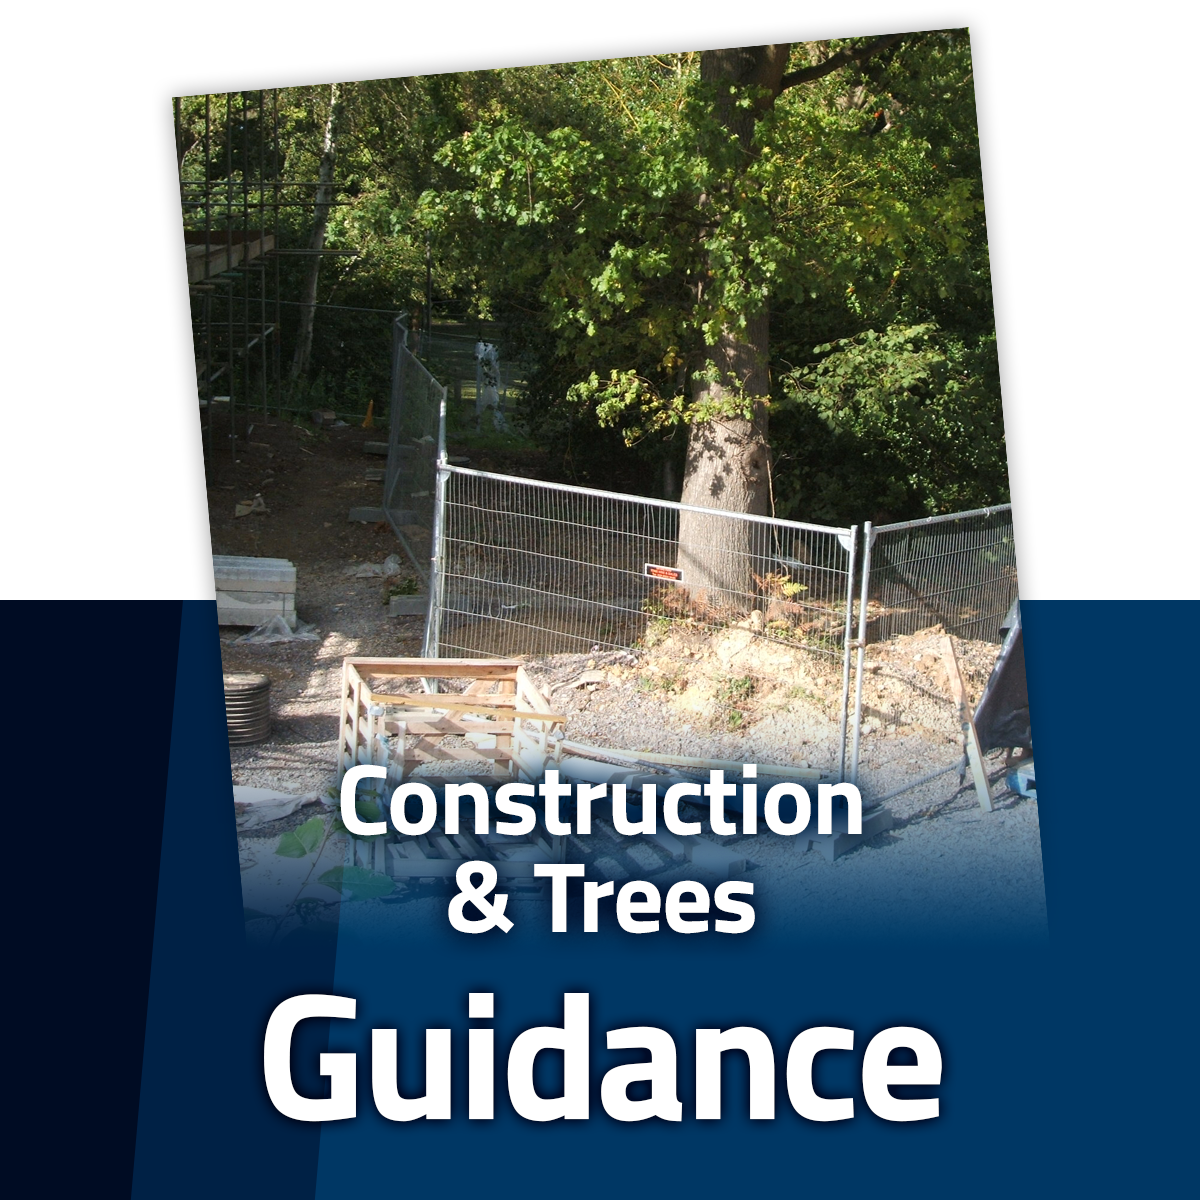 Guide to Trees and Construction